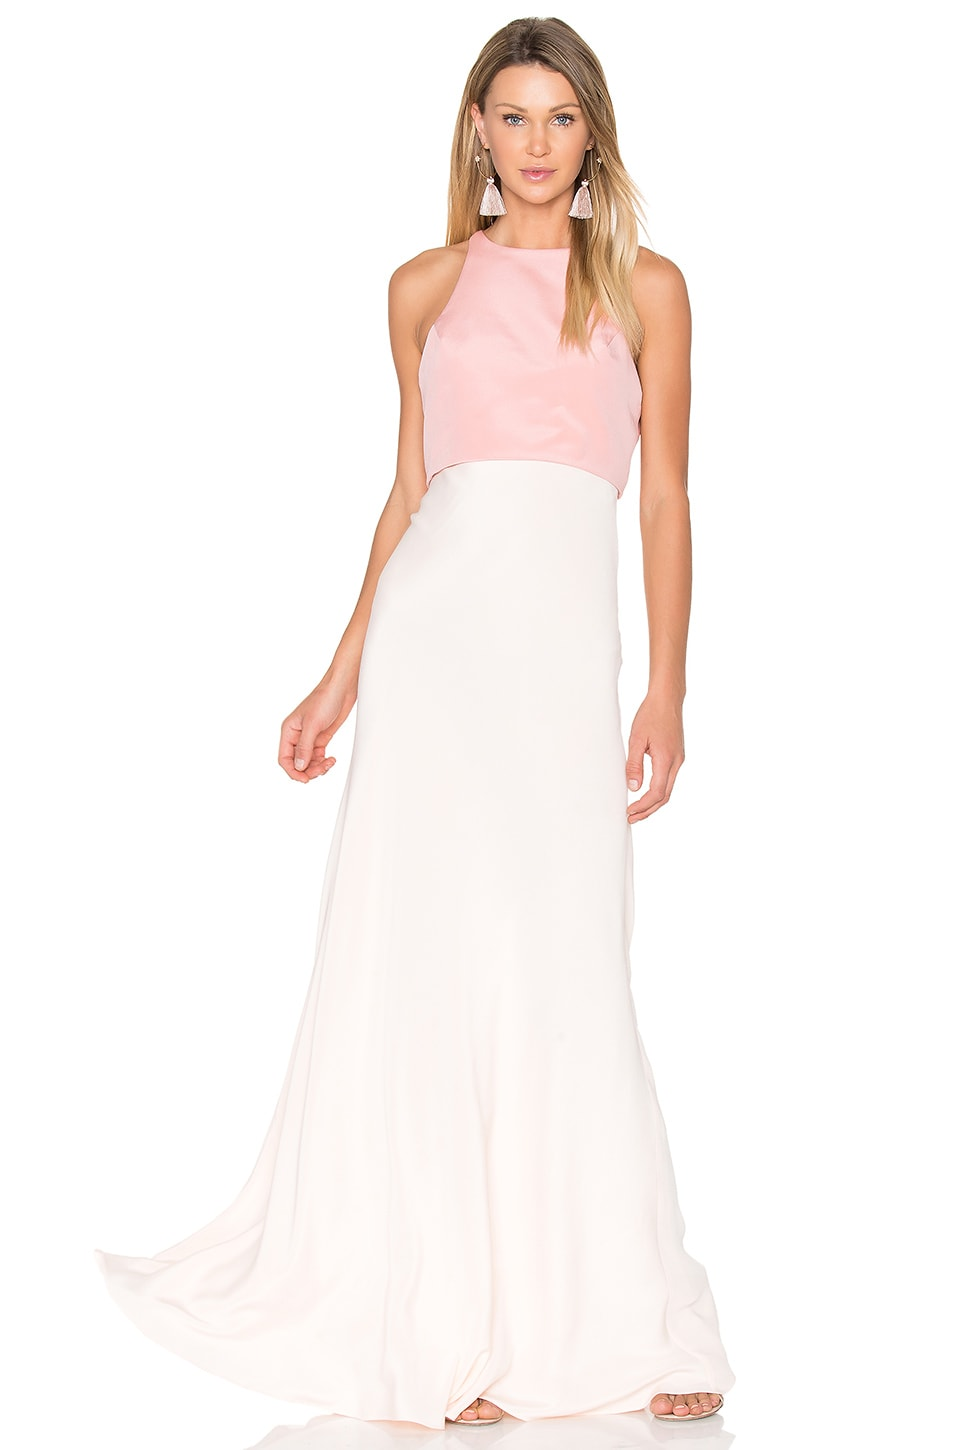 JILL JILL STUART Two Tone Gown in Blush Pink & Powder